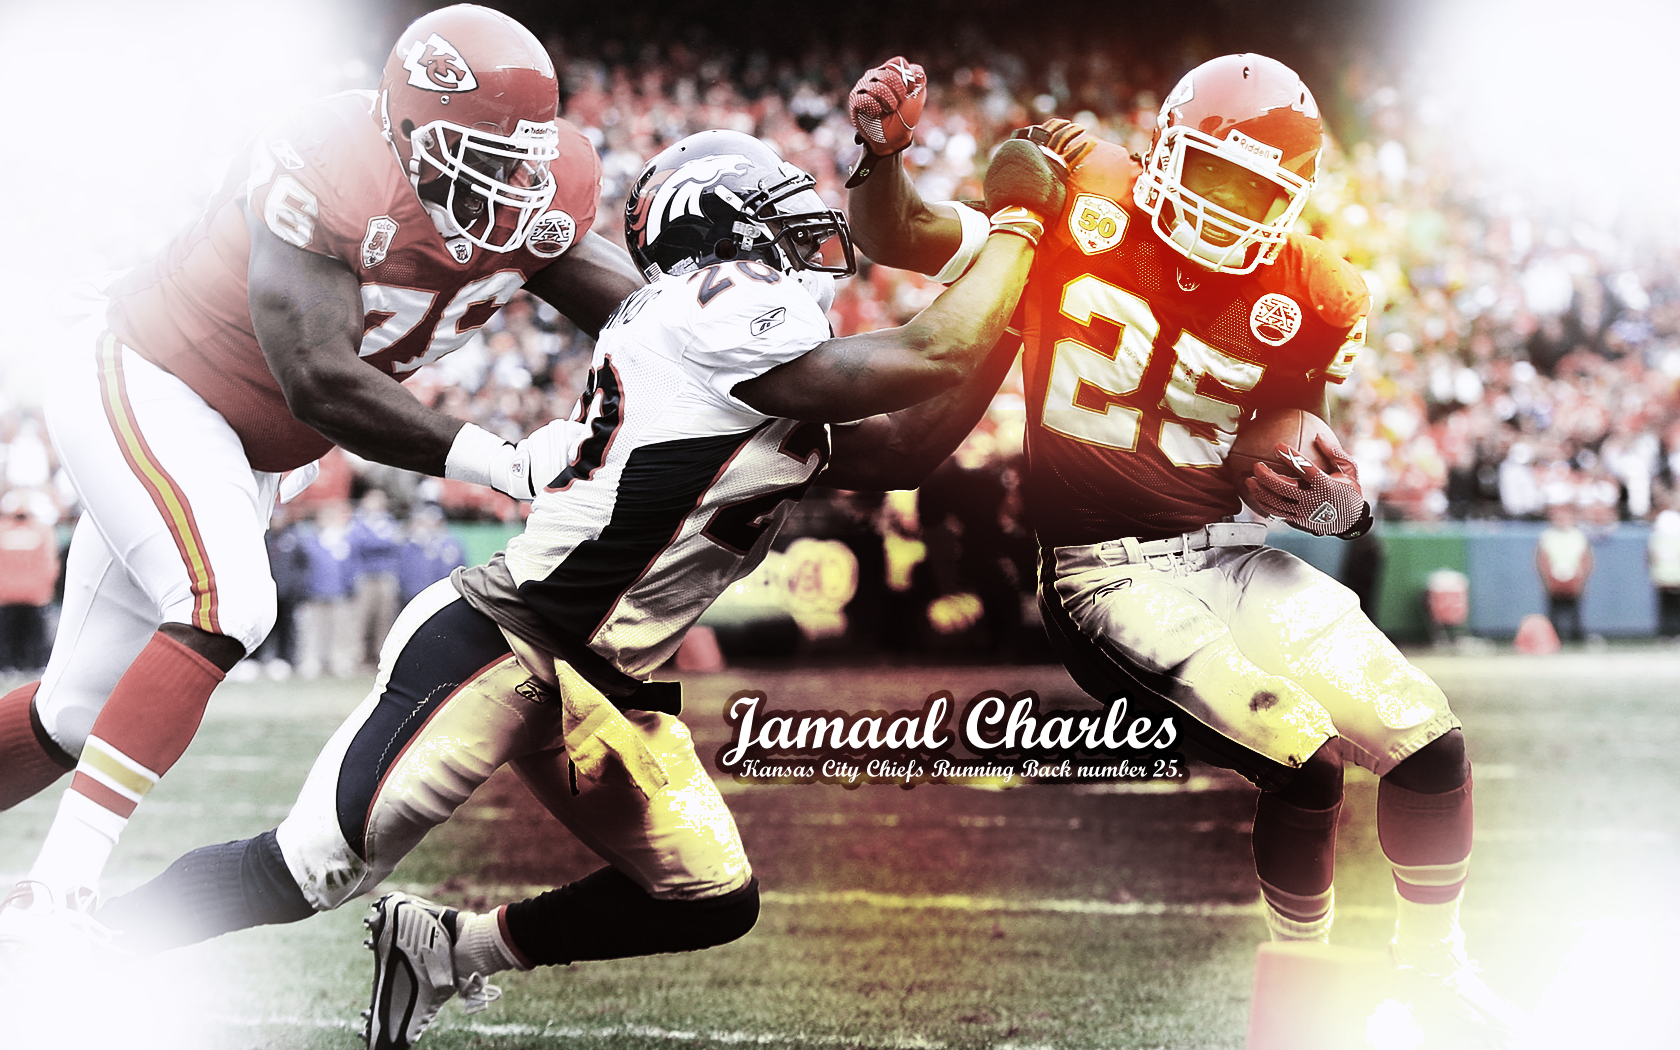 jamaal charles wallpaper by adaam8 on deviantart